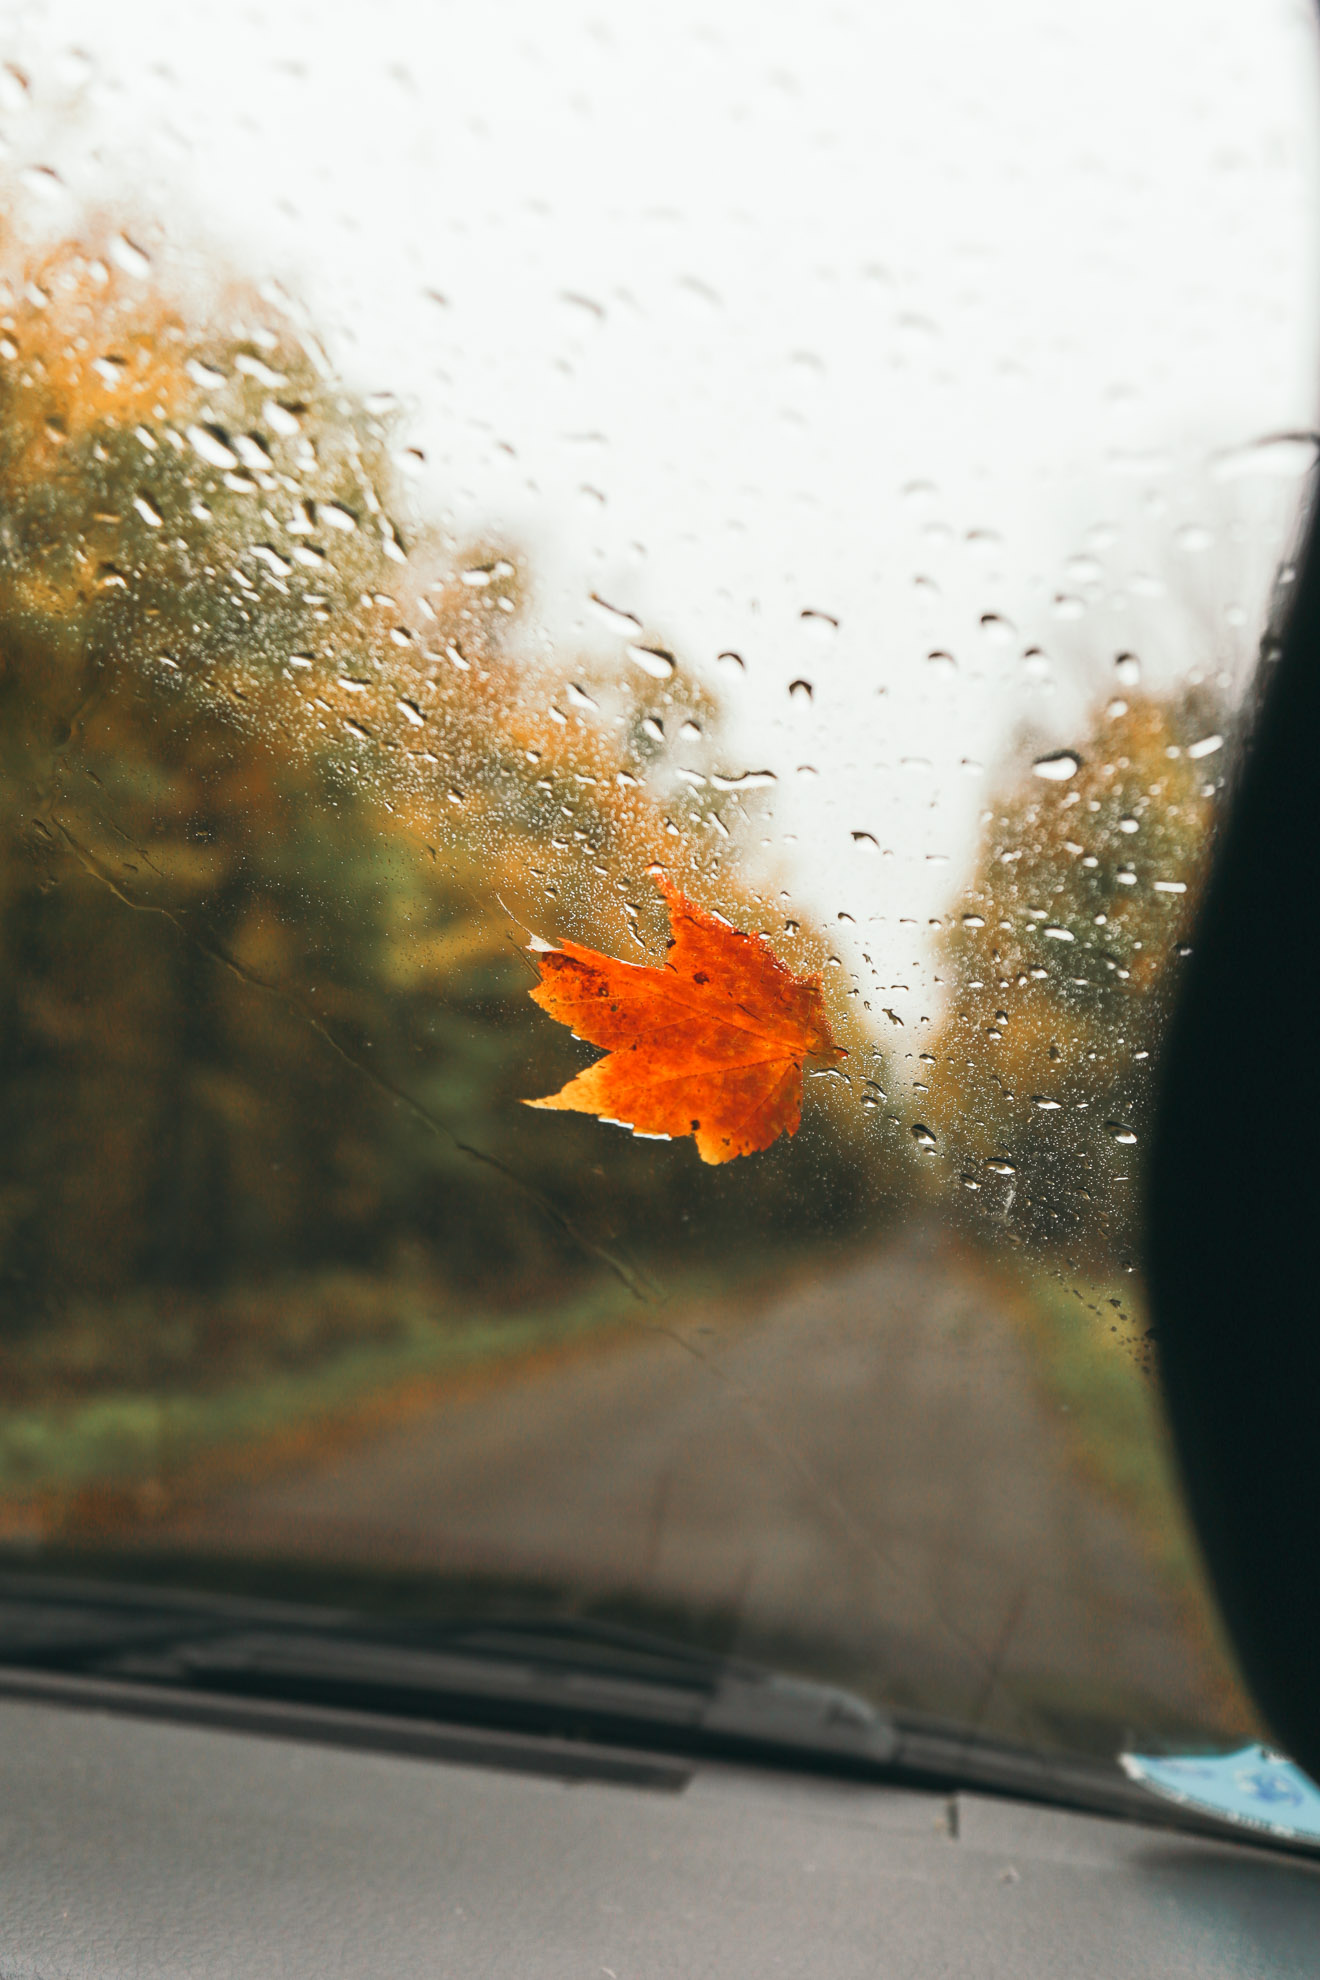 red orange leaf stuck in car window